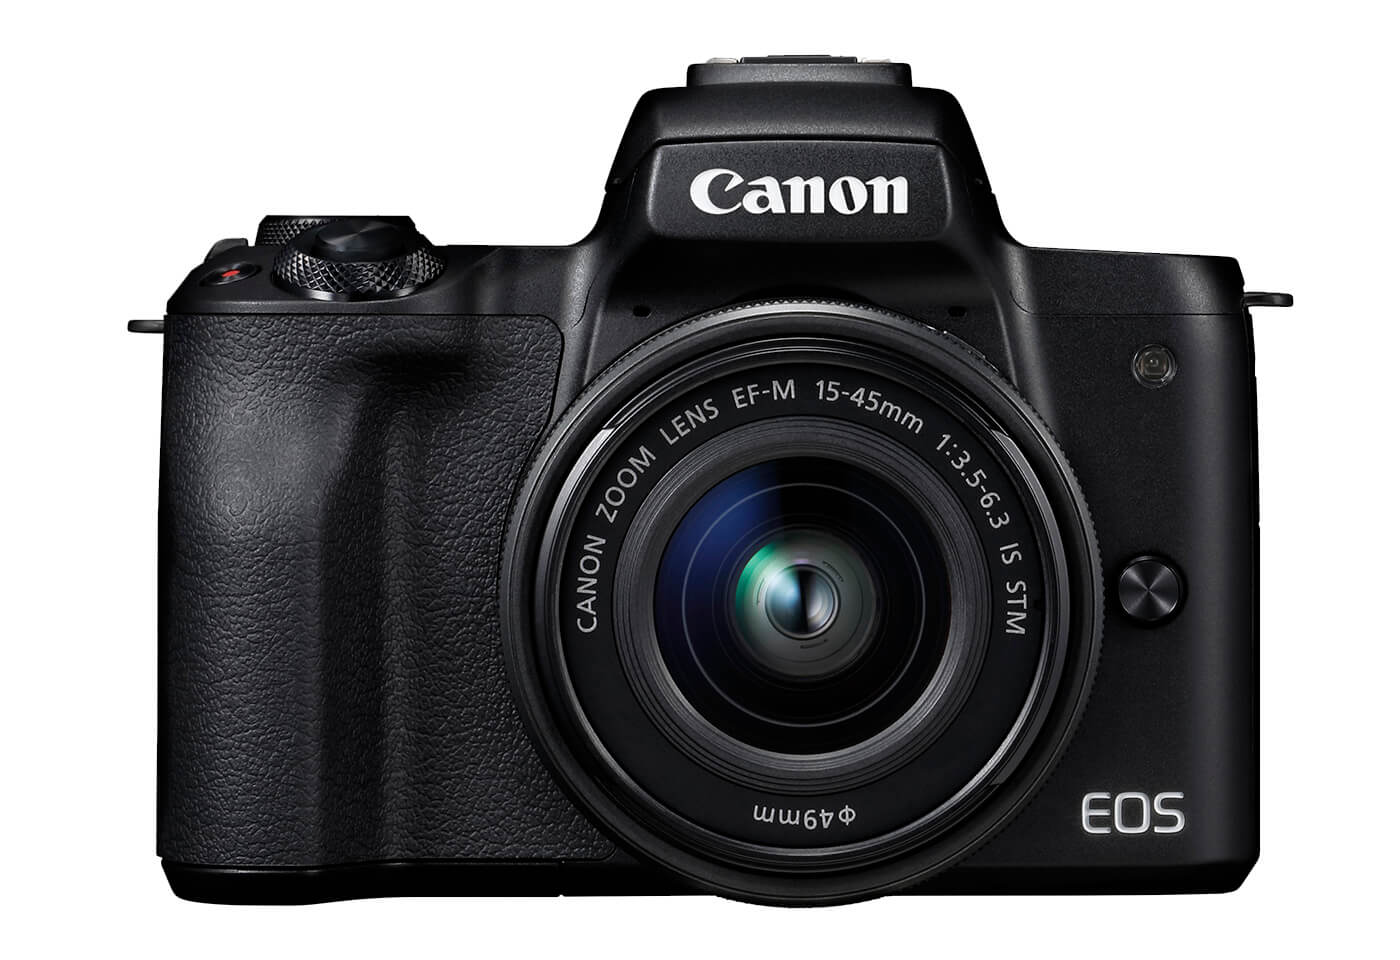 Image of EOS M50 with shadow